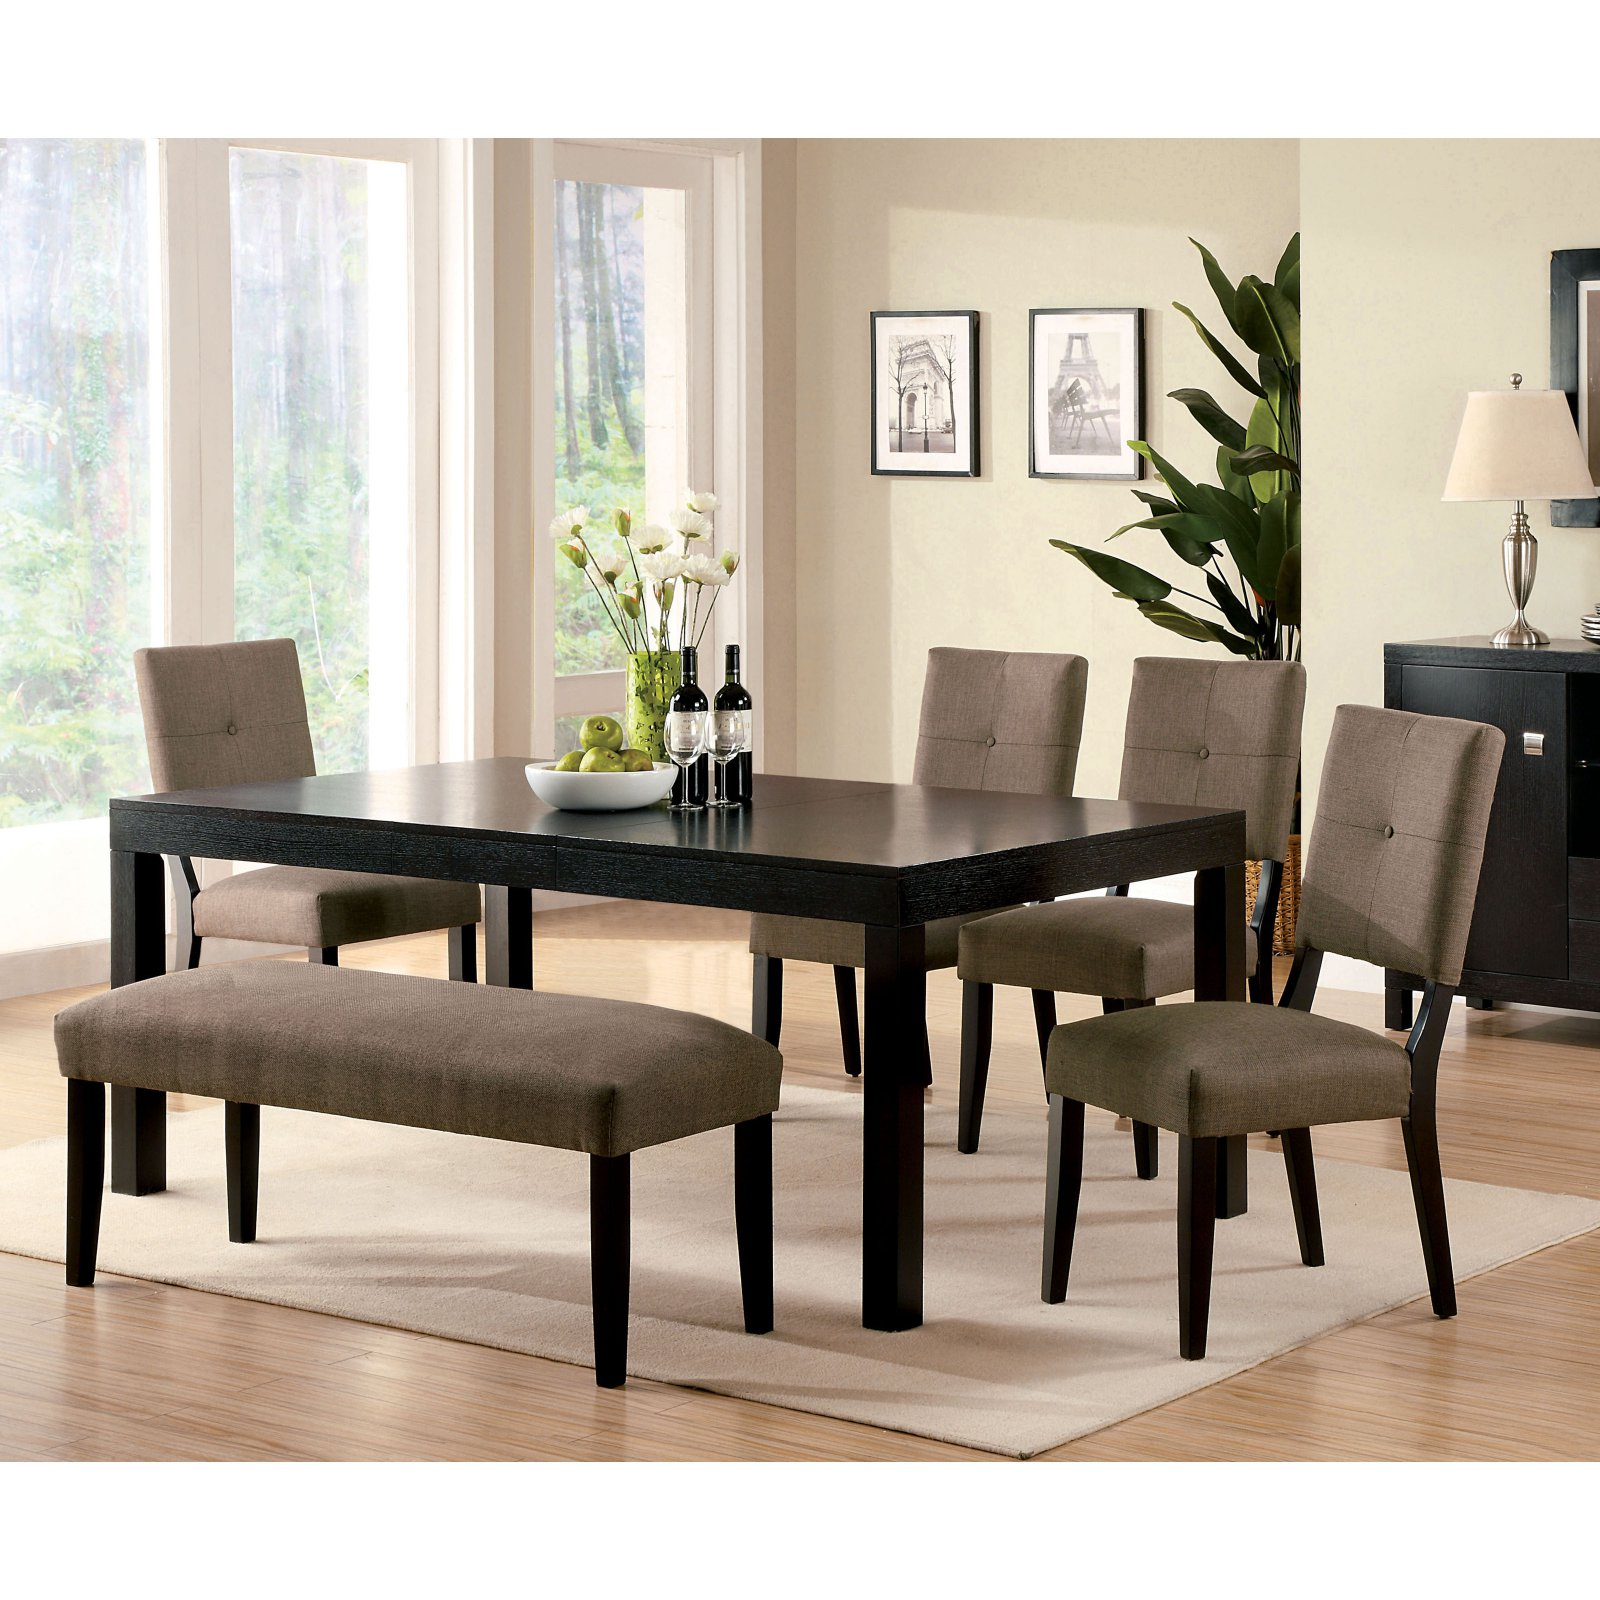 Furniture of America Jones 6 Piece Dining Set with Bench